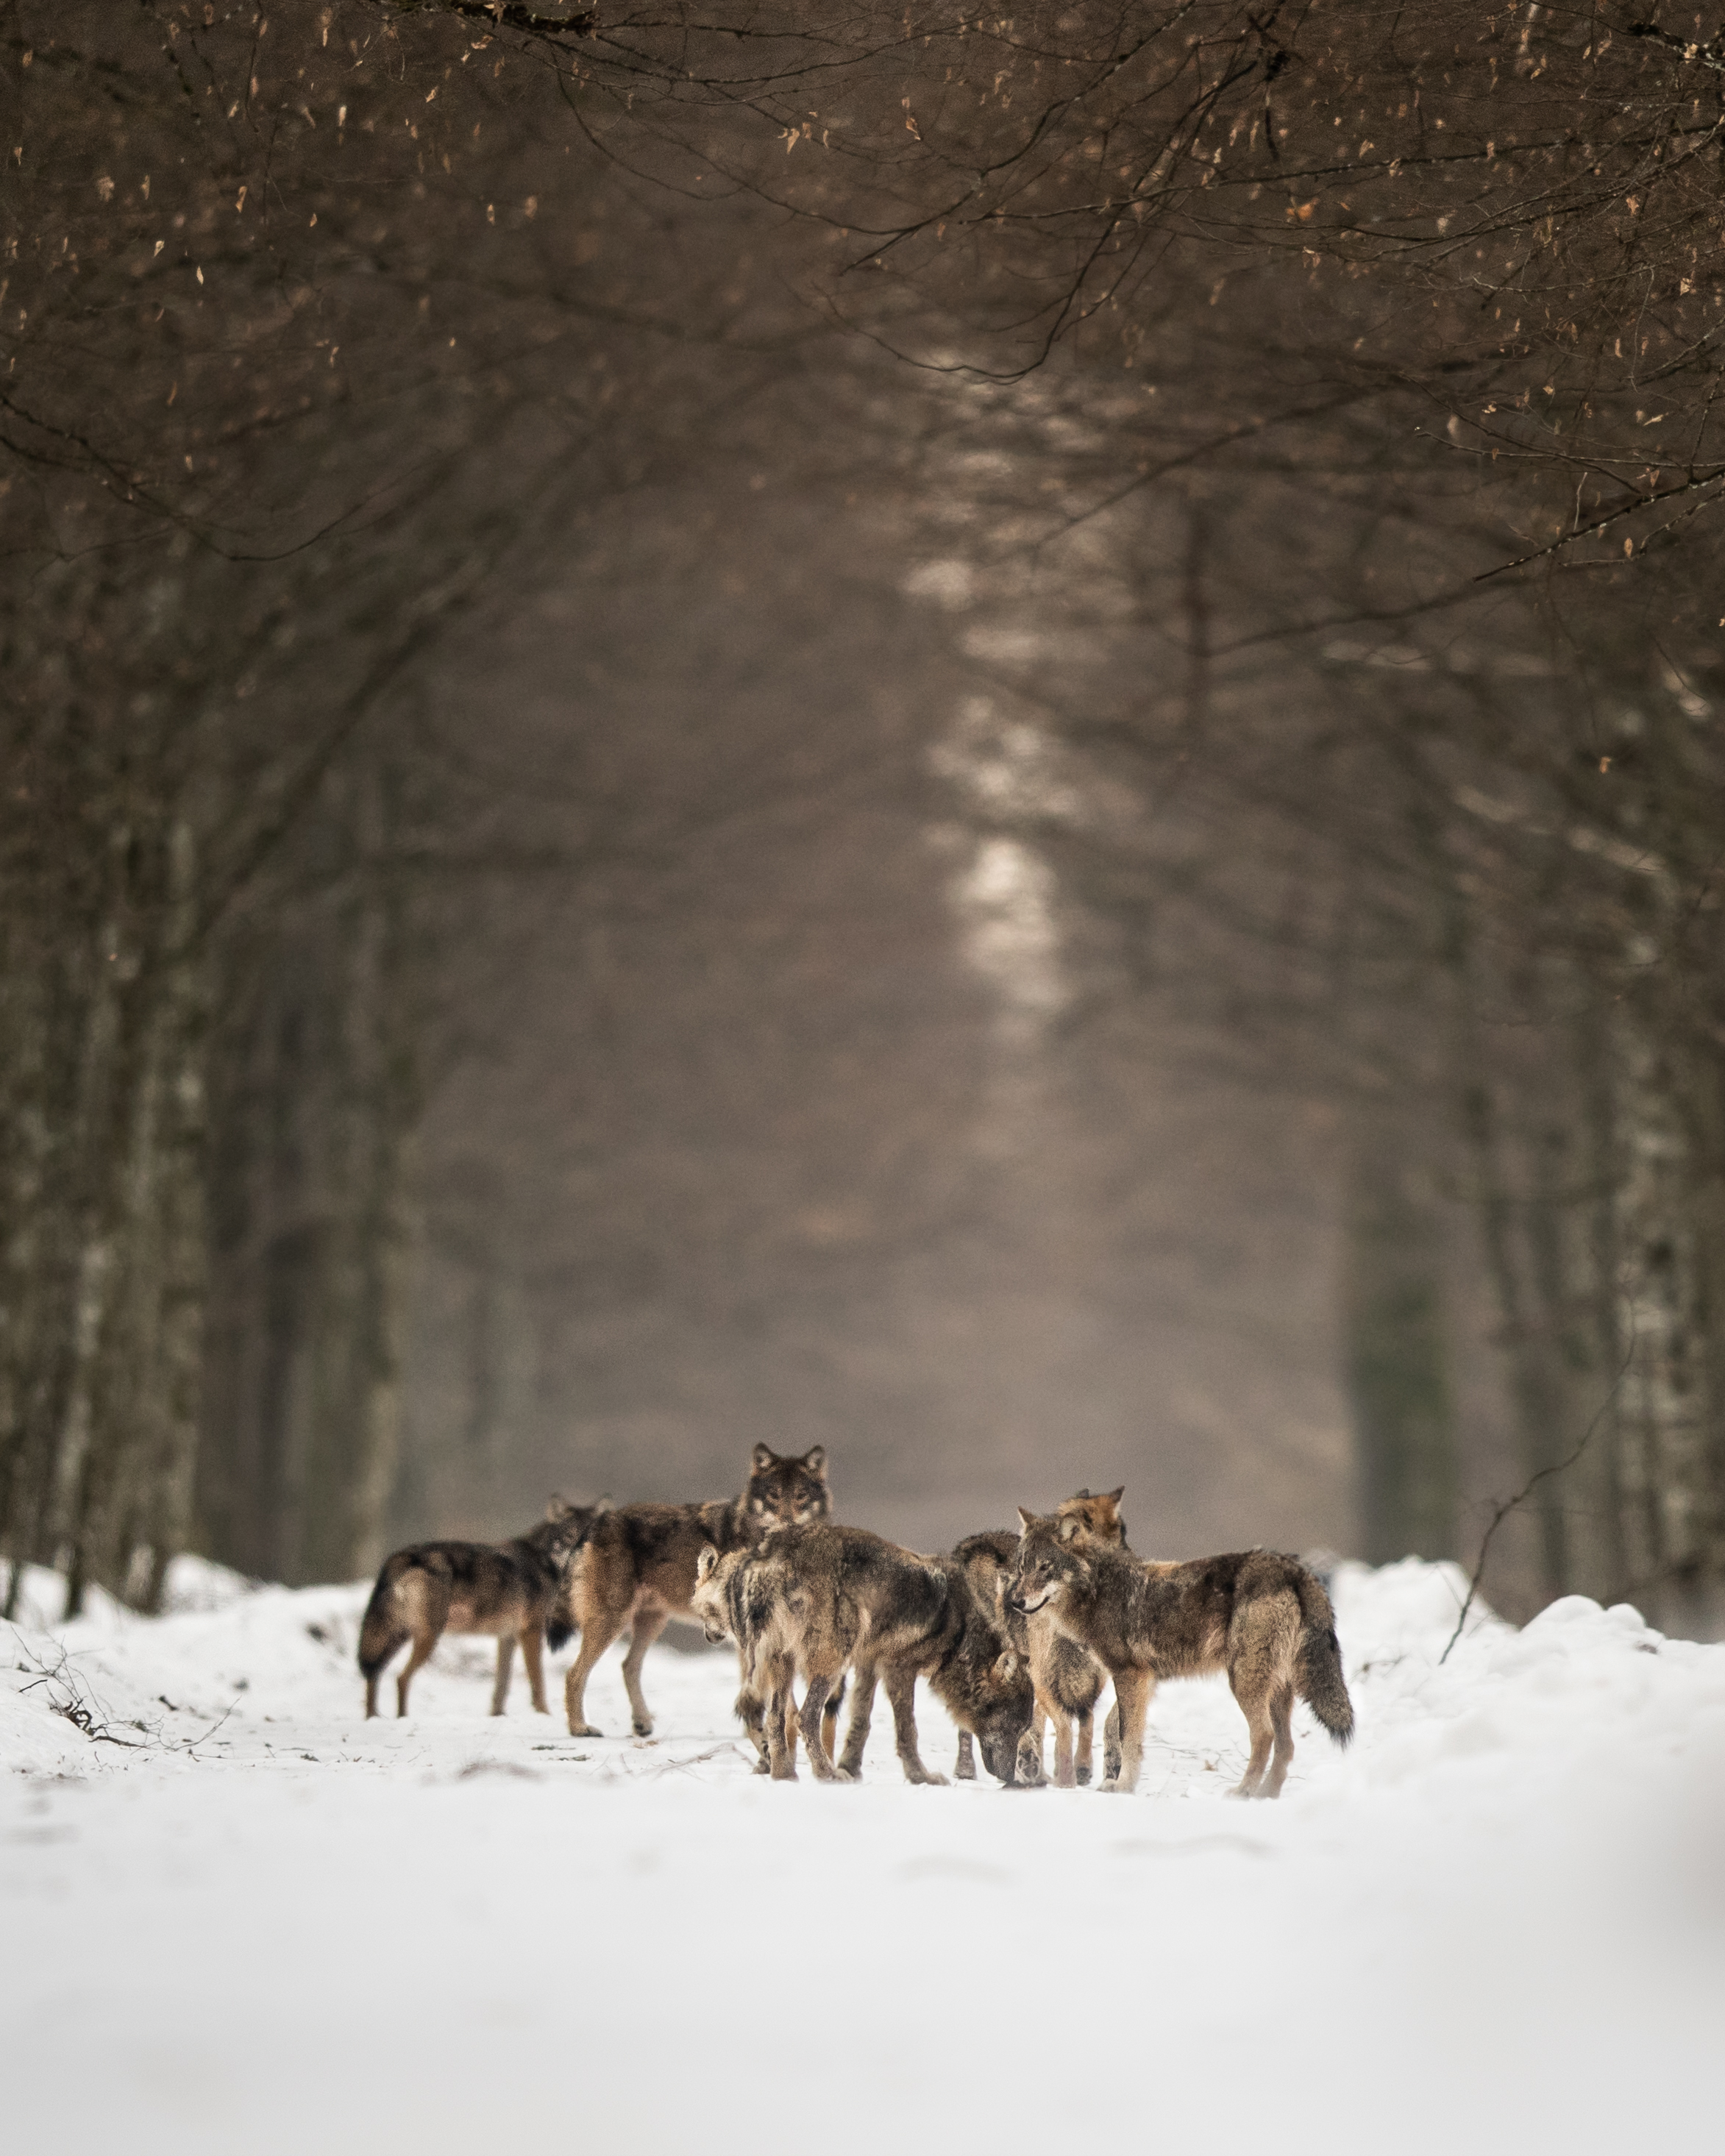 Wolves rendezvous at a wilderness road crossing (Photo: Grzegorz Długosz)